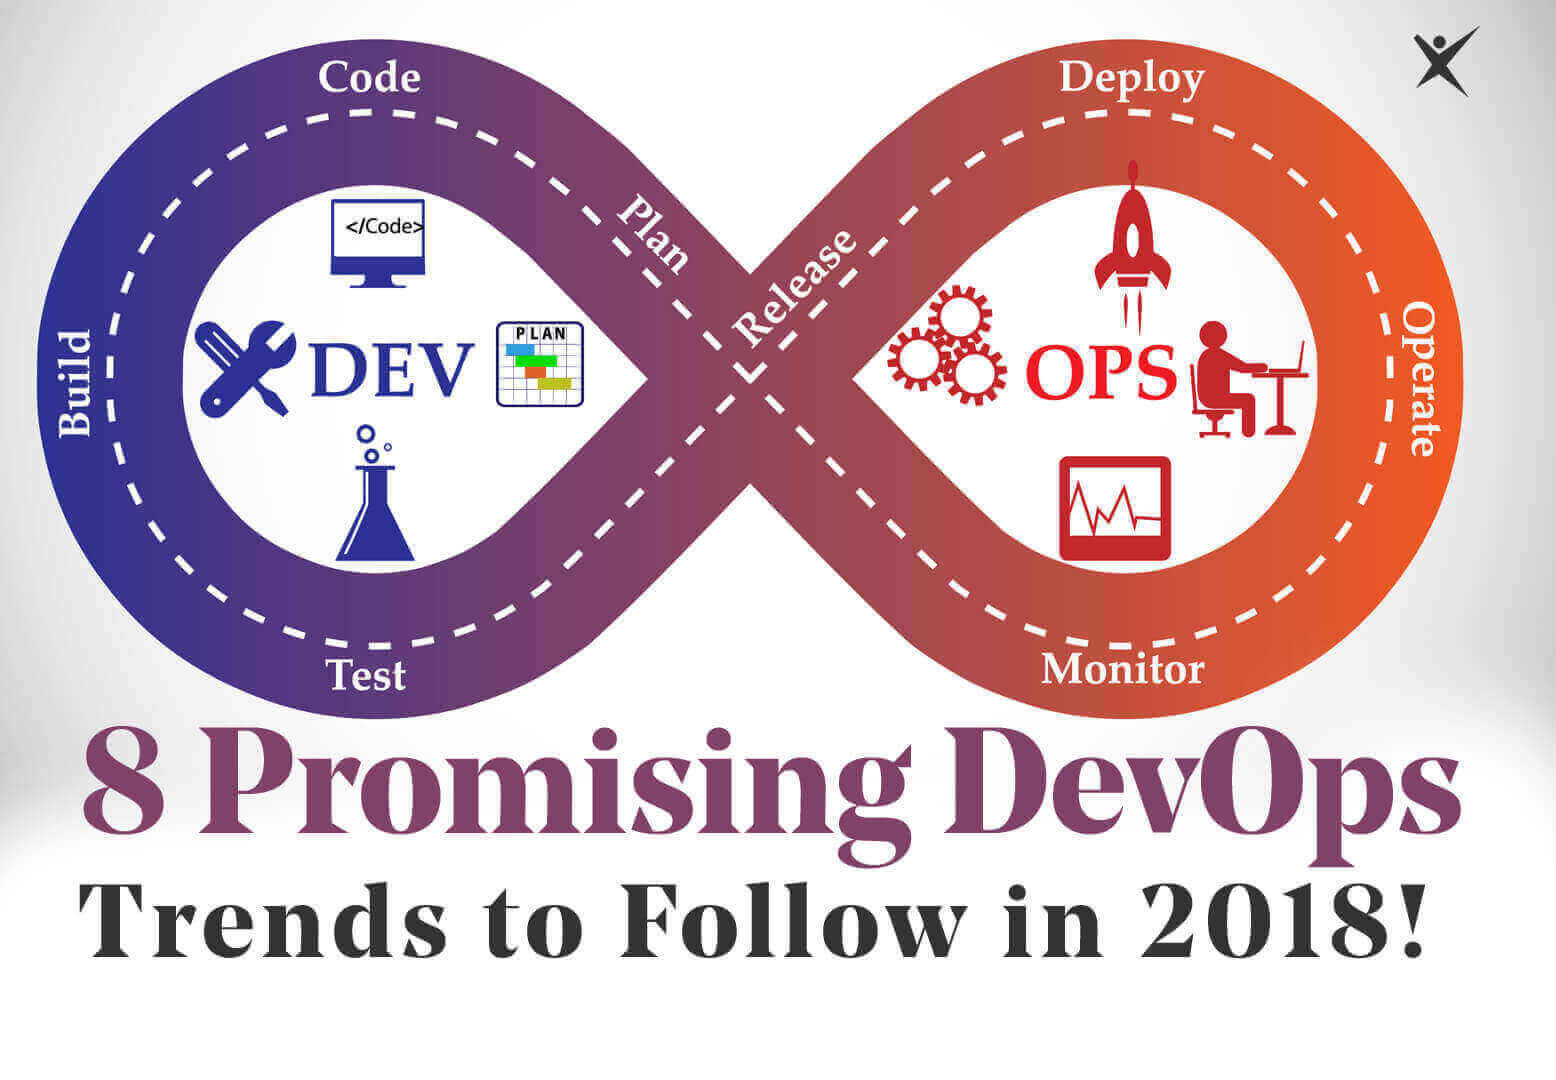 8 Promising DevOps Trends to Follow in 2018